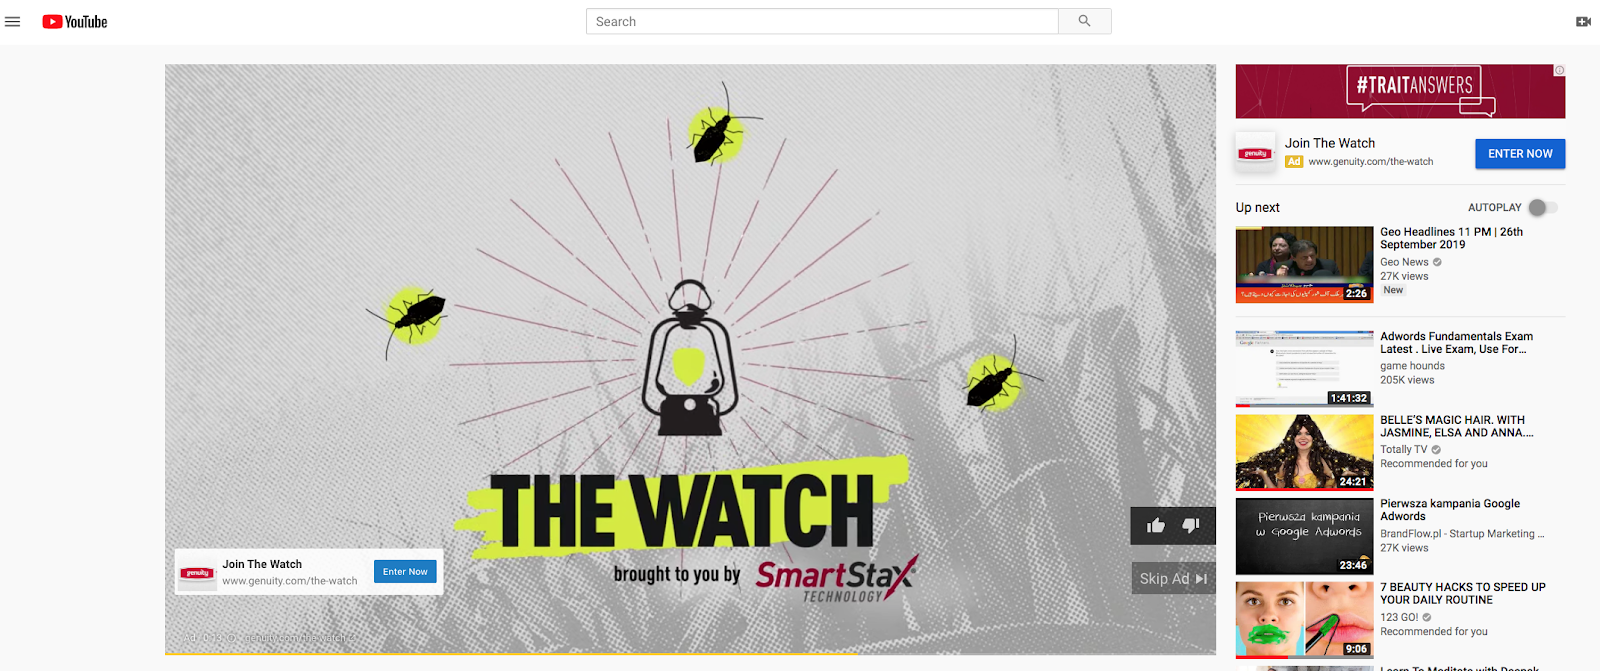 The Watch Social Media Engagement Preview